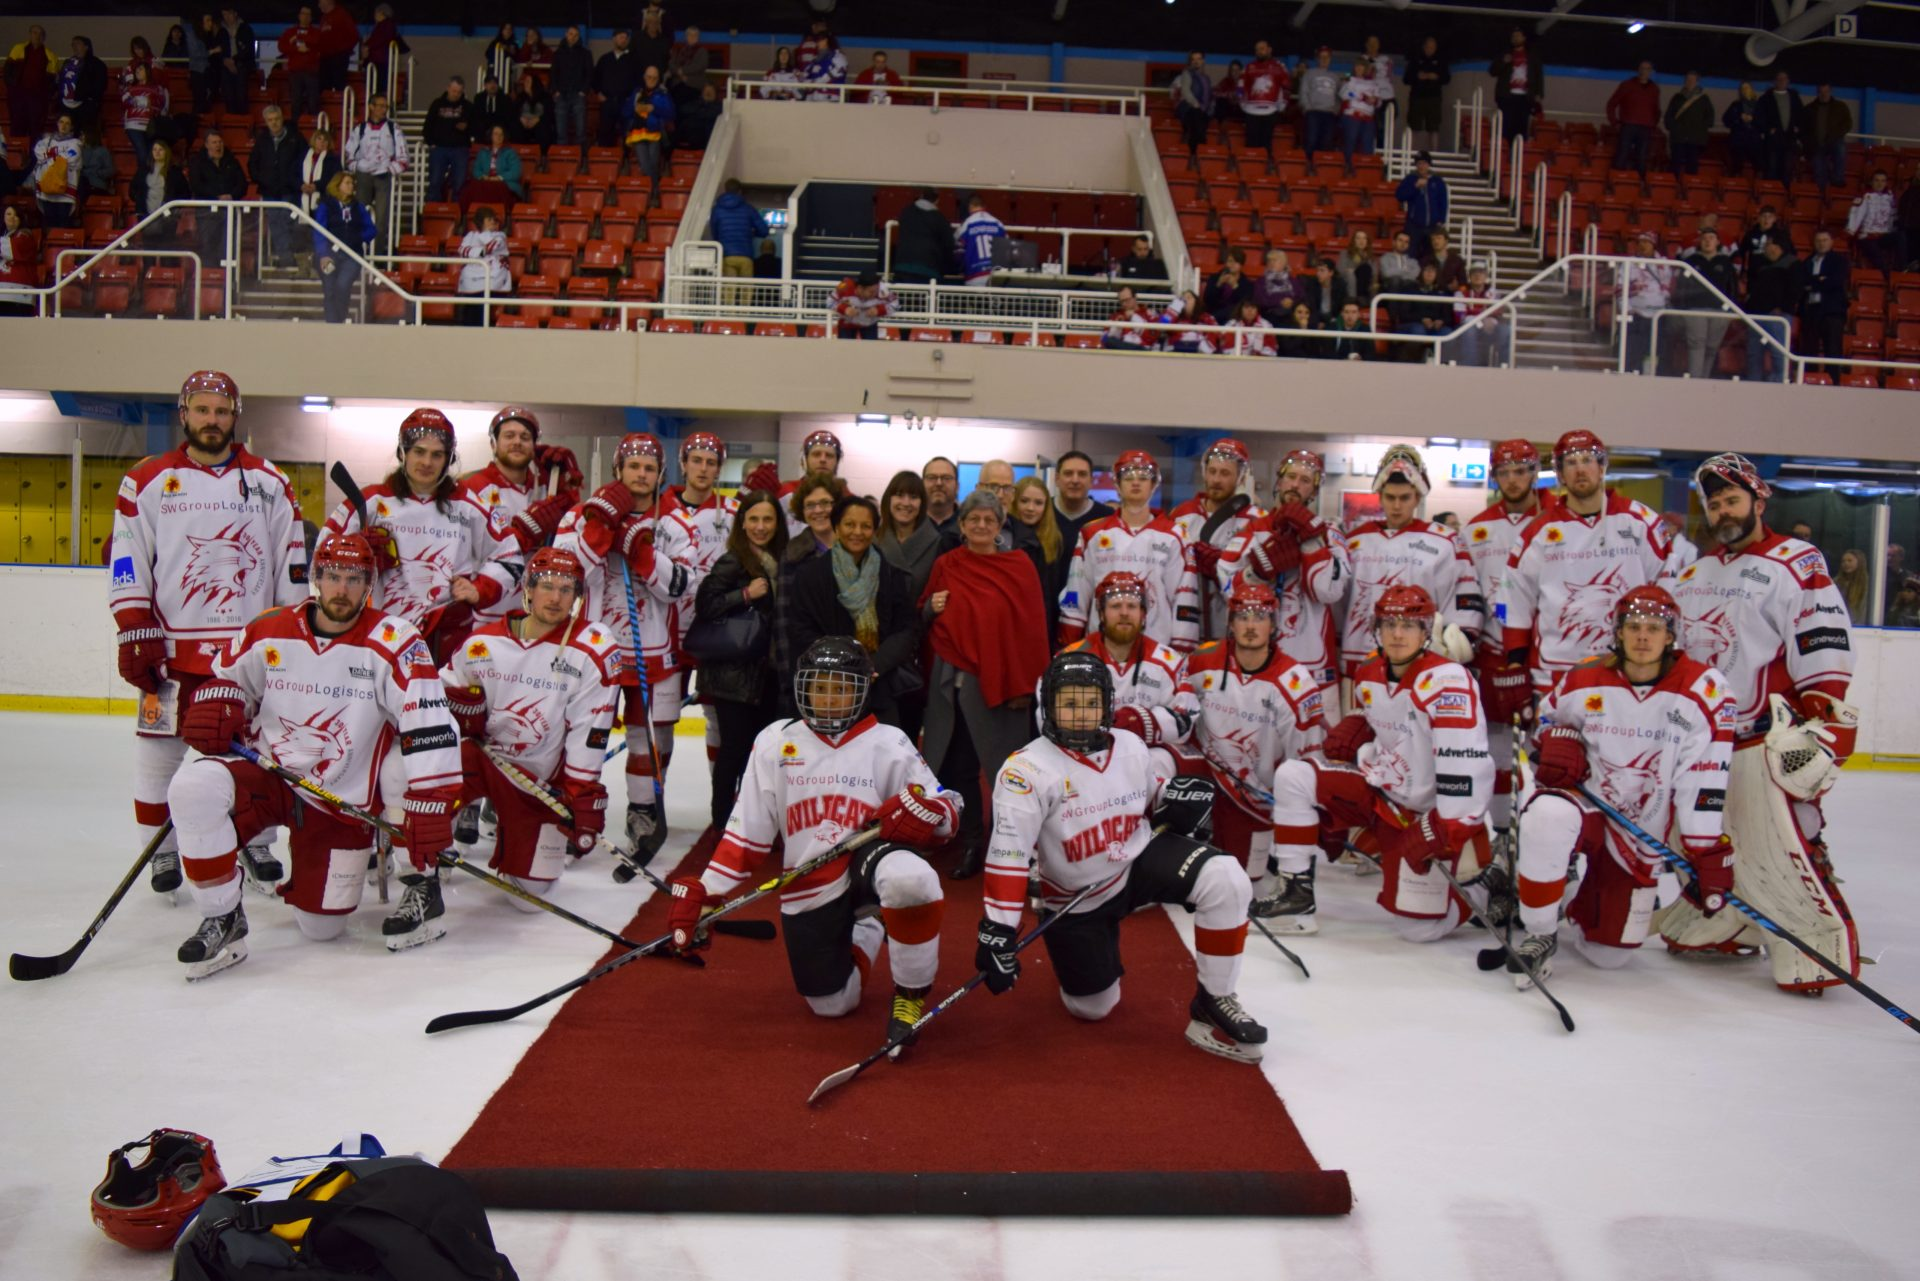 Purrfect fun with the Swindon Wildcats